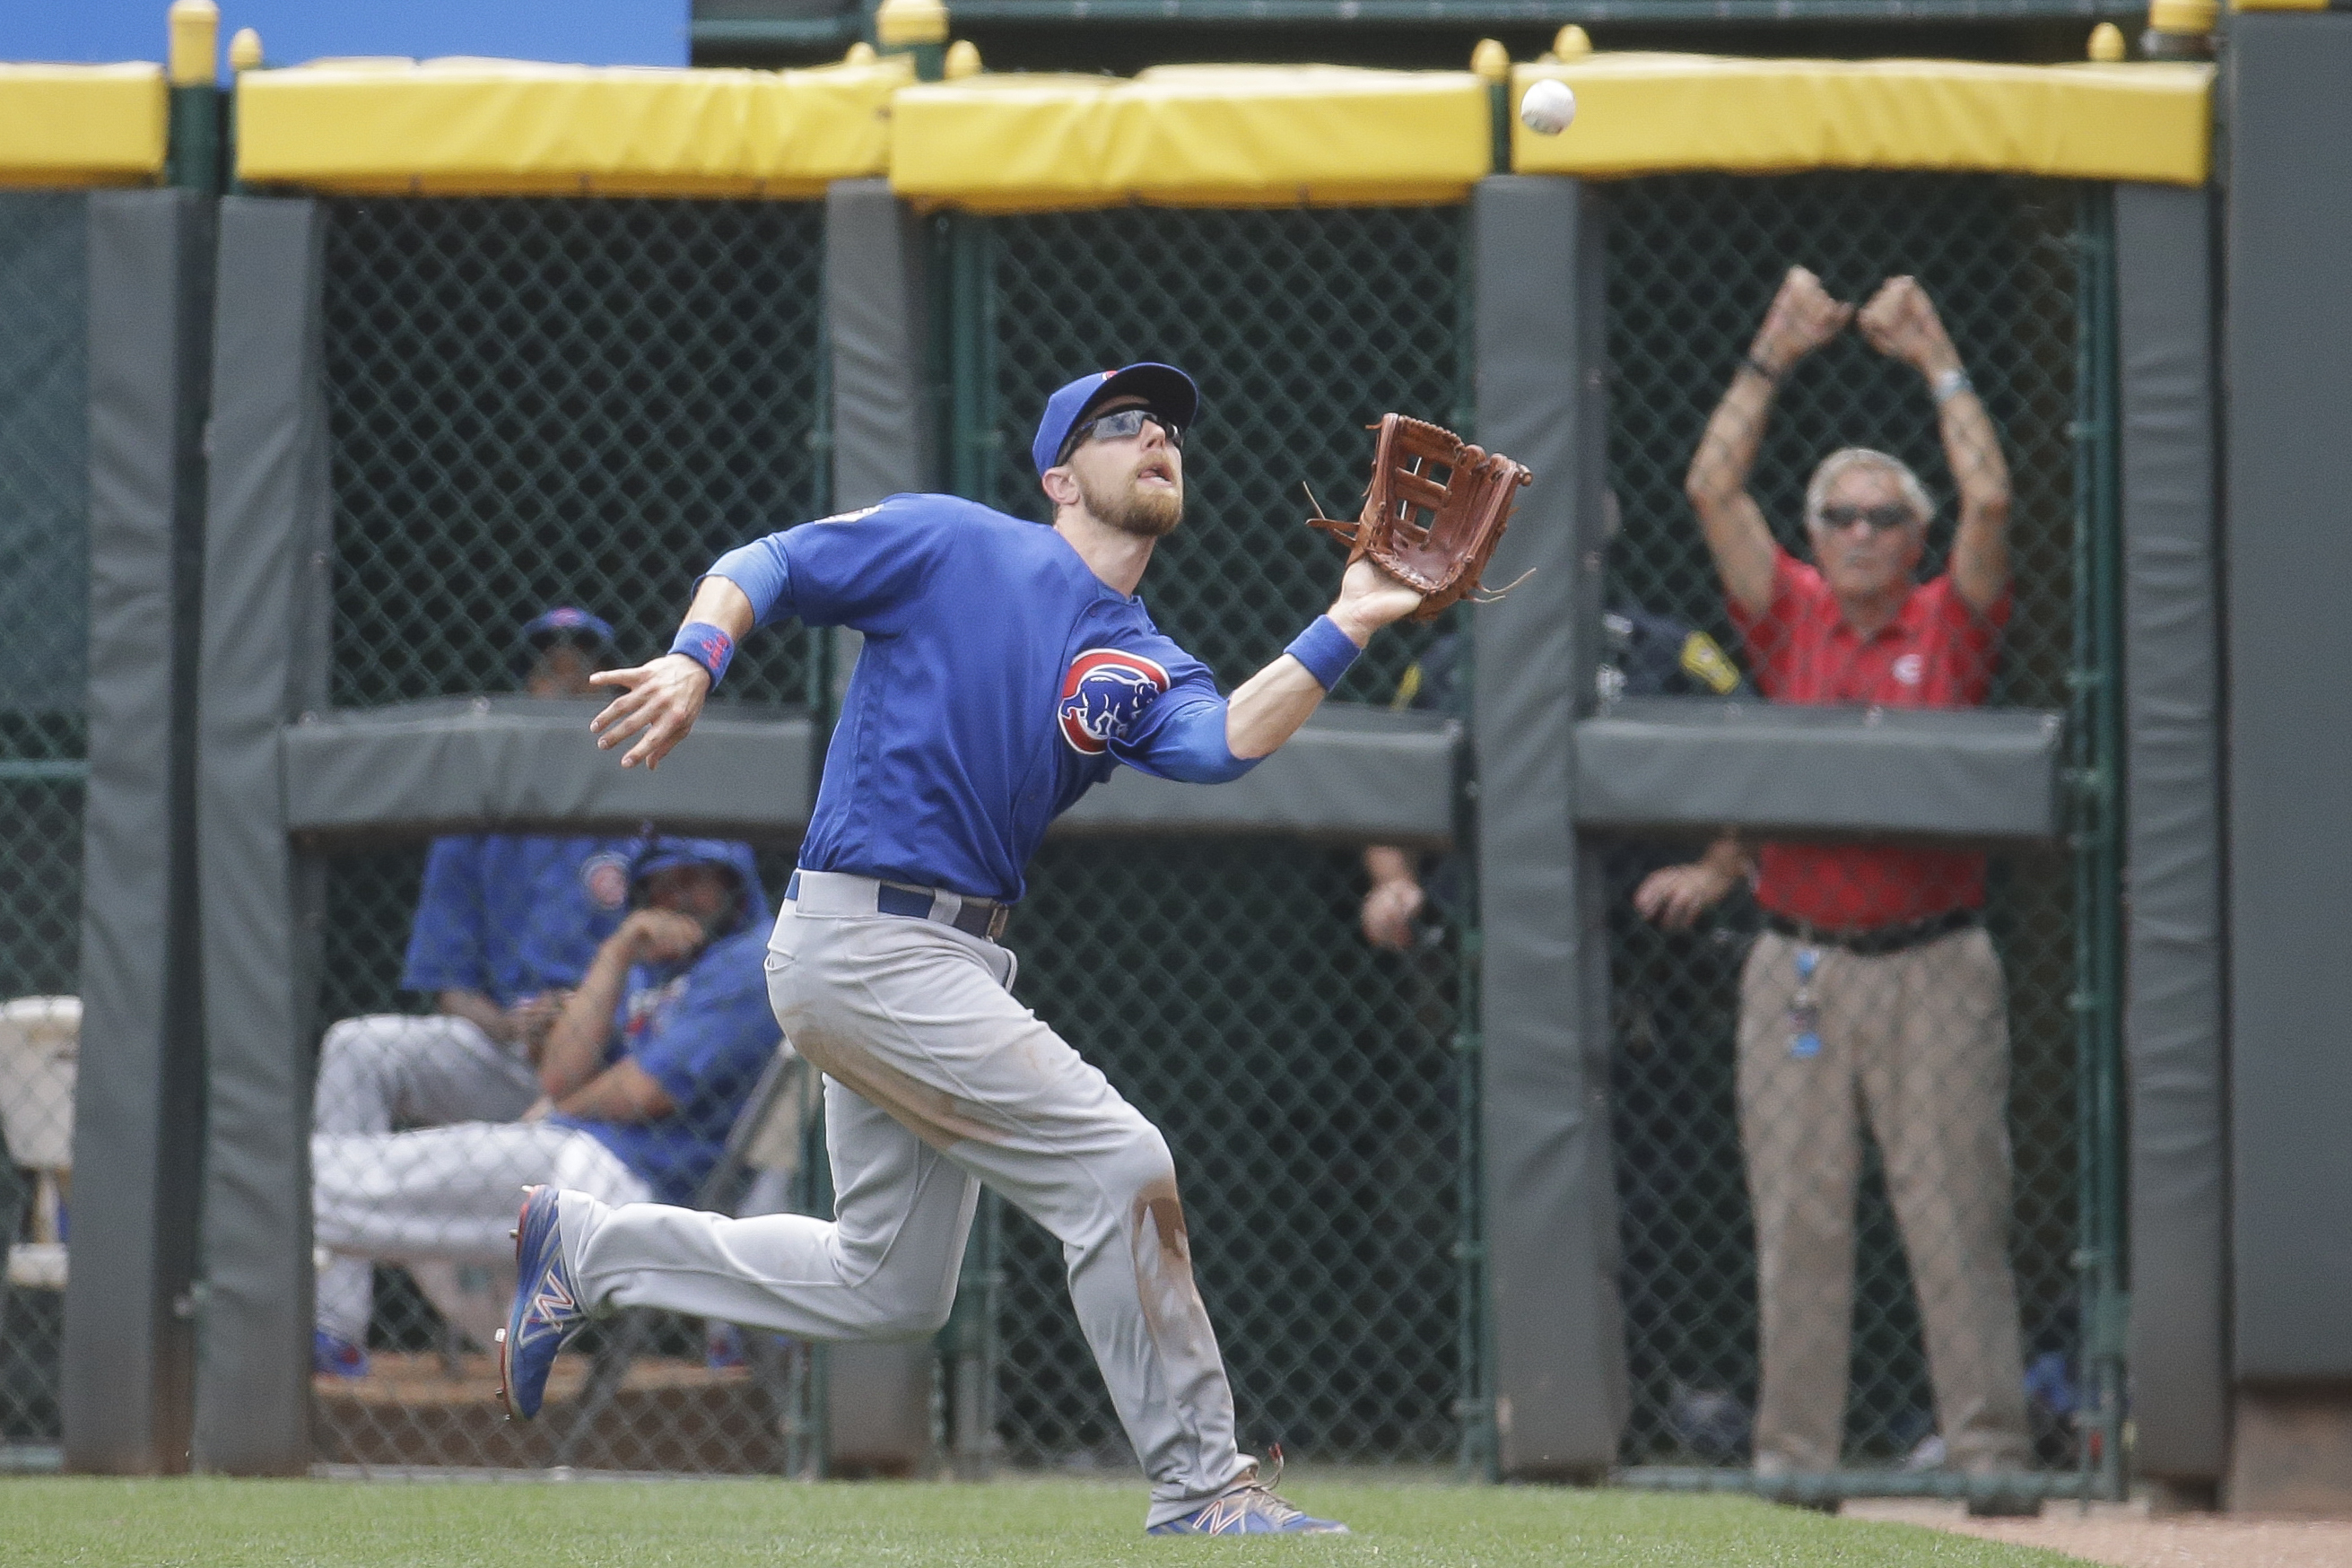 Chicago Cubs second baseman Ben Zobrist makes the catch for the out on Cincinnati Reds' Tyler Holt to close the fourth inning of a baseball game, Wednesday, June 29, 2016, in Cincinnati. (AP Photo/John Minchillo)